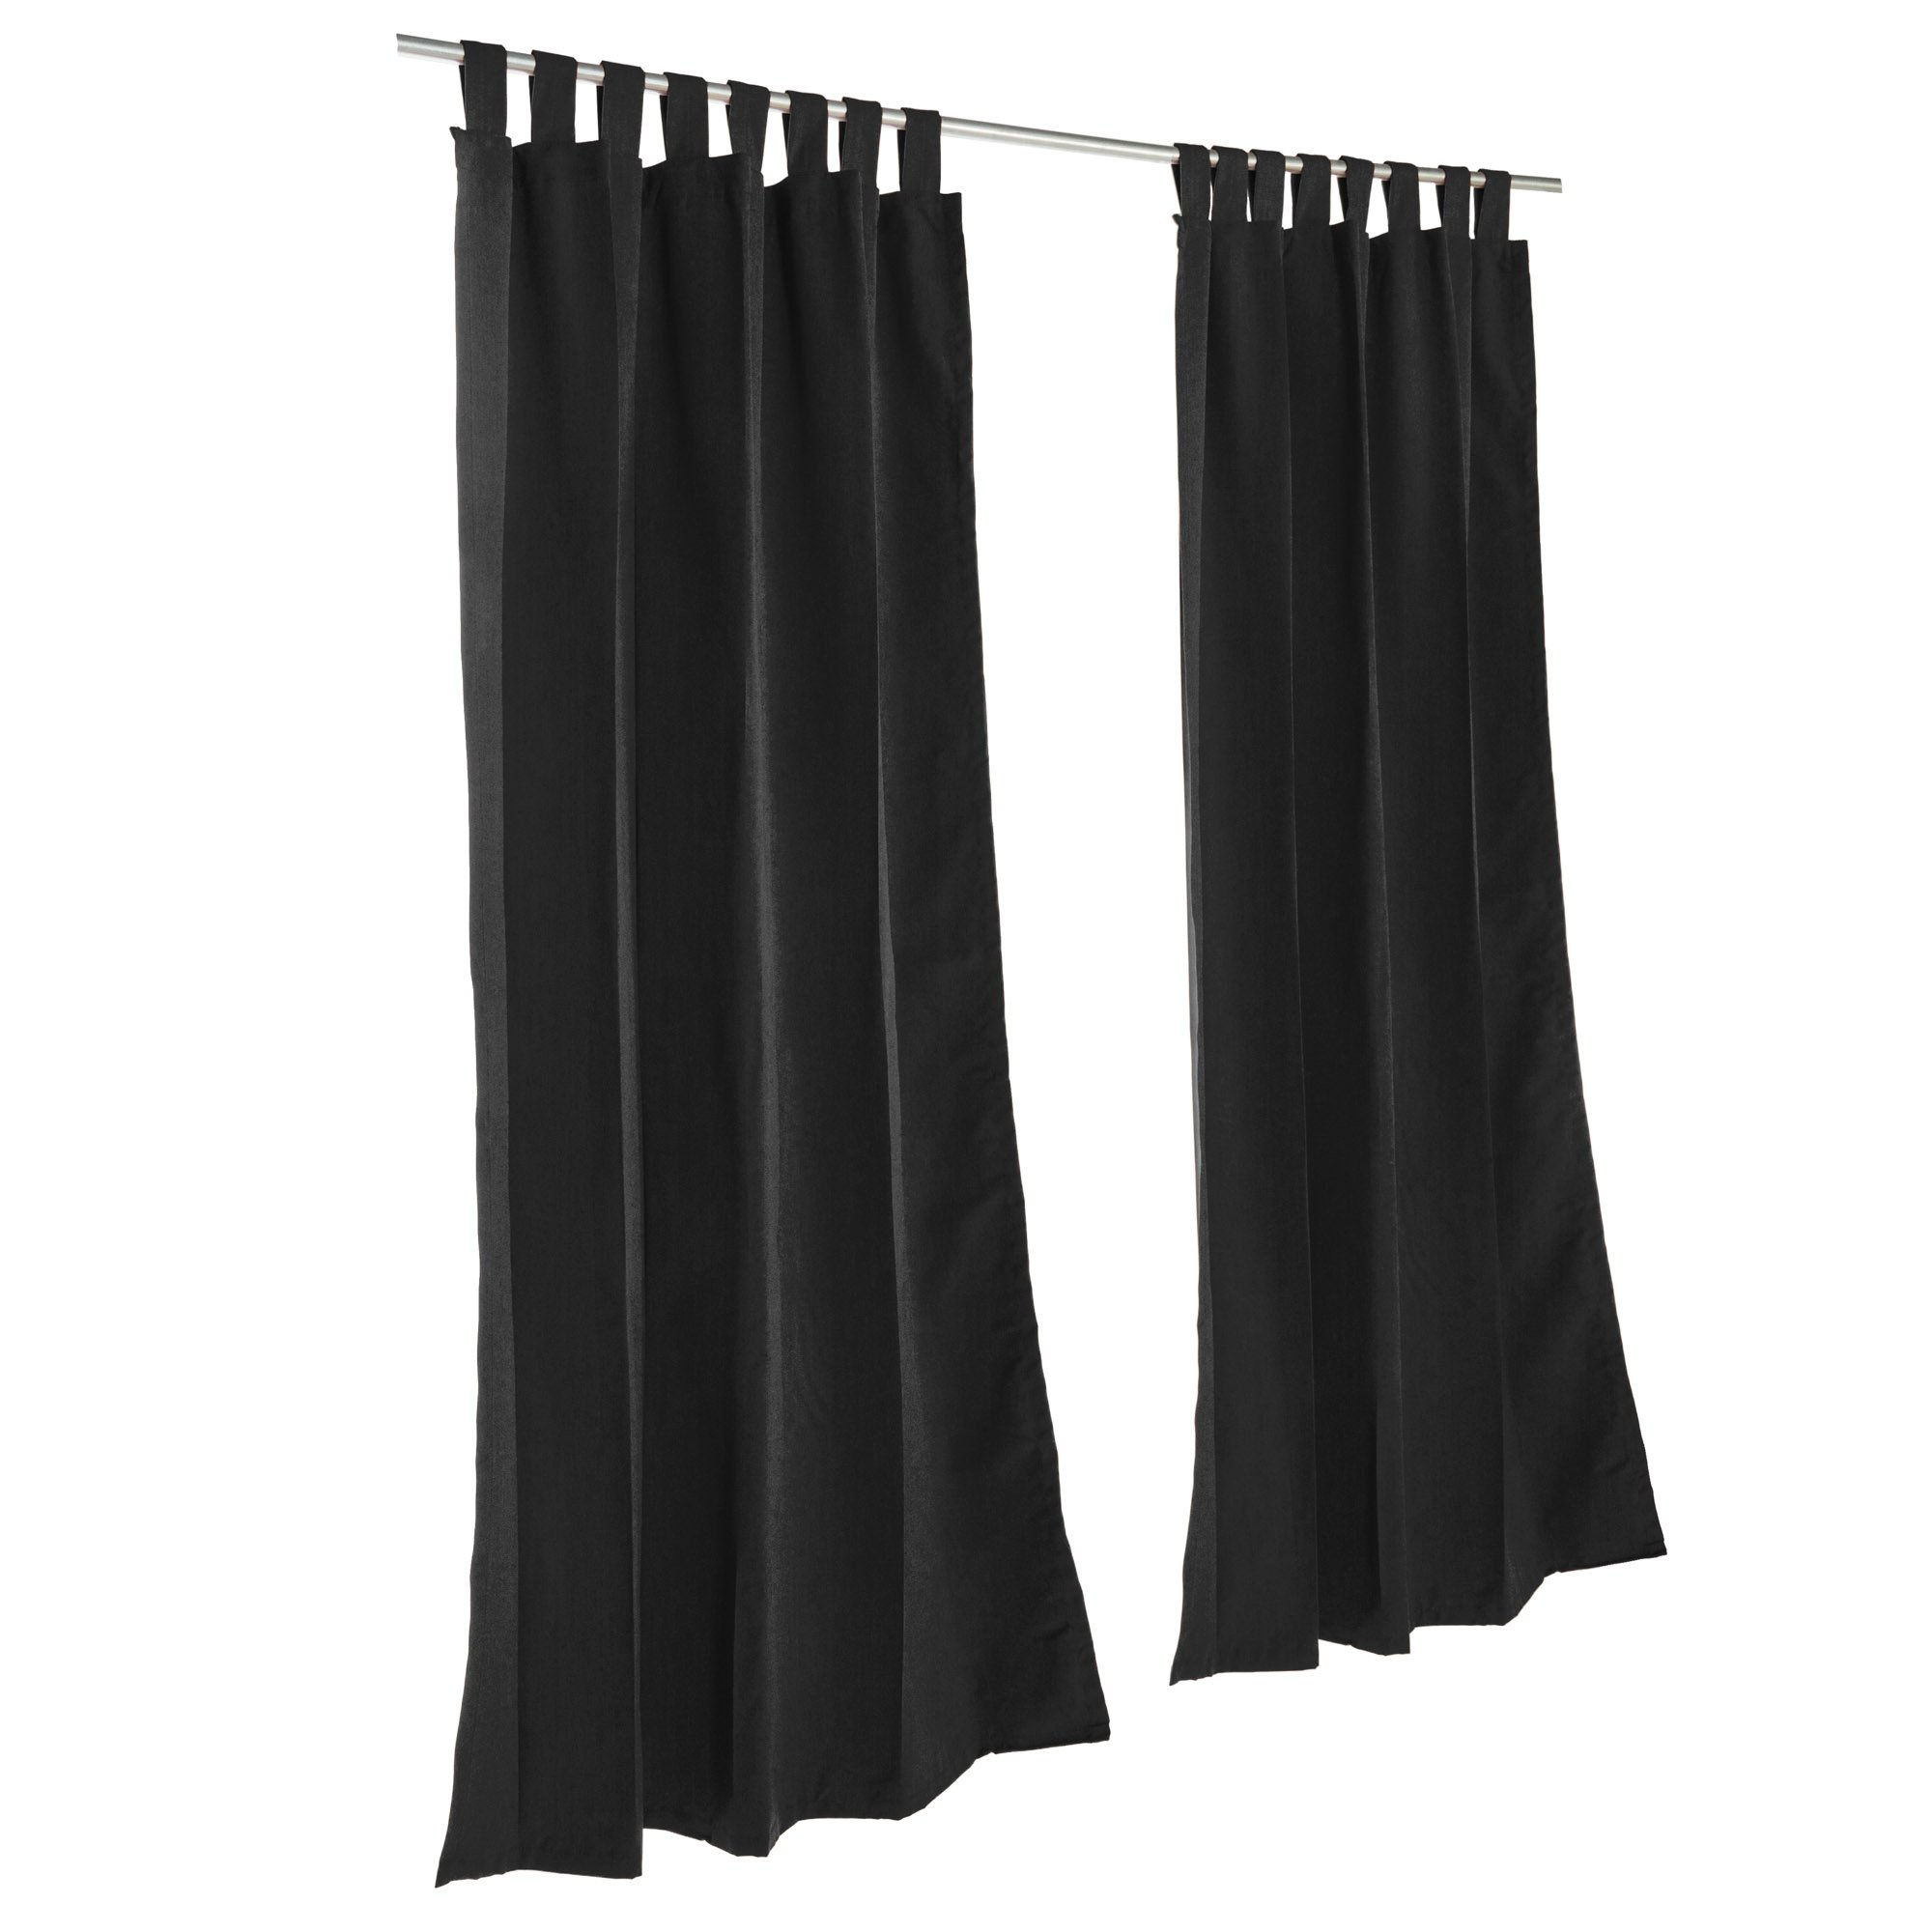 Essentials by DFO Black Sunbrella outdoor curtain with tabs 96 long